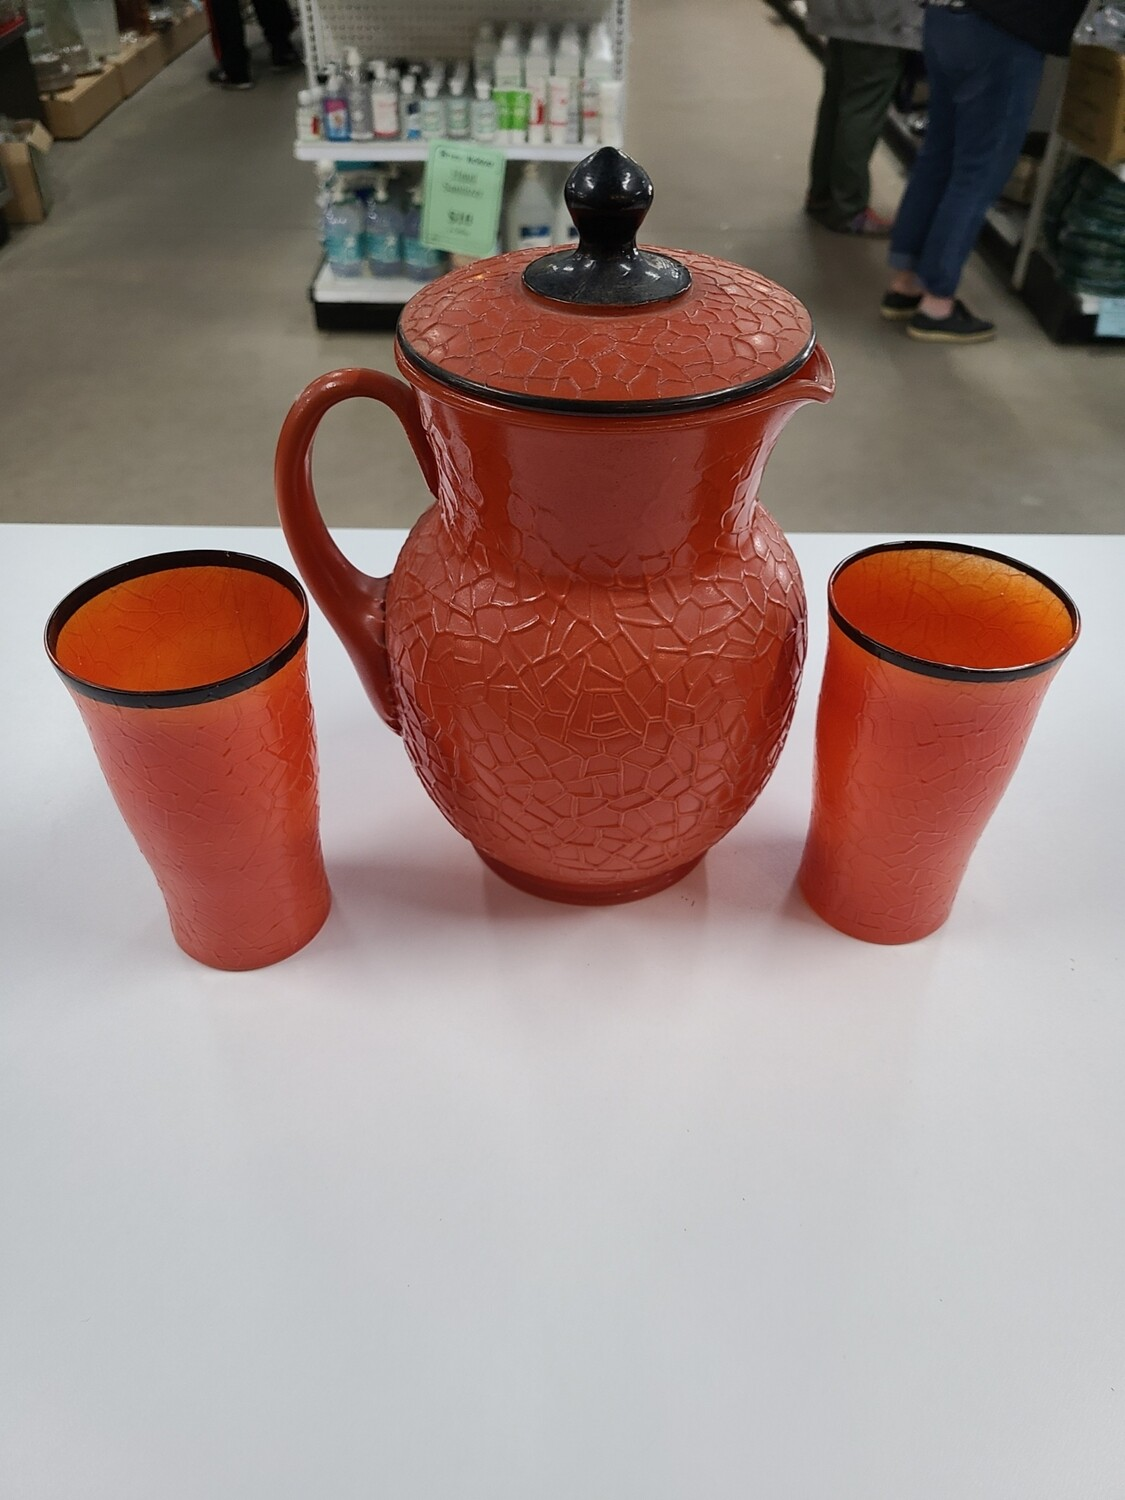 Orange Pitcher and Cups (2)